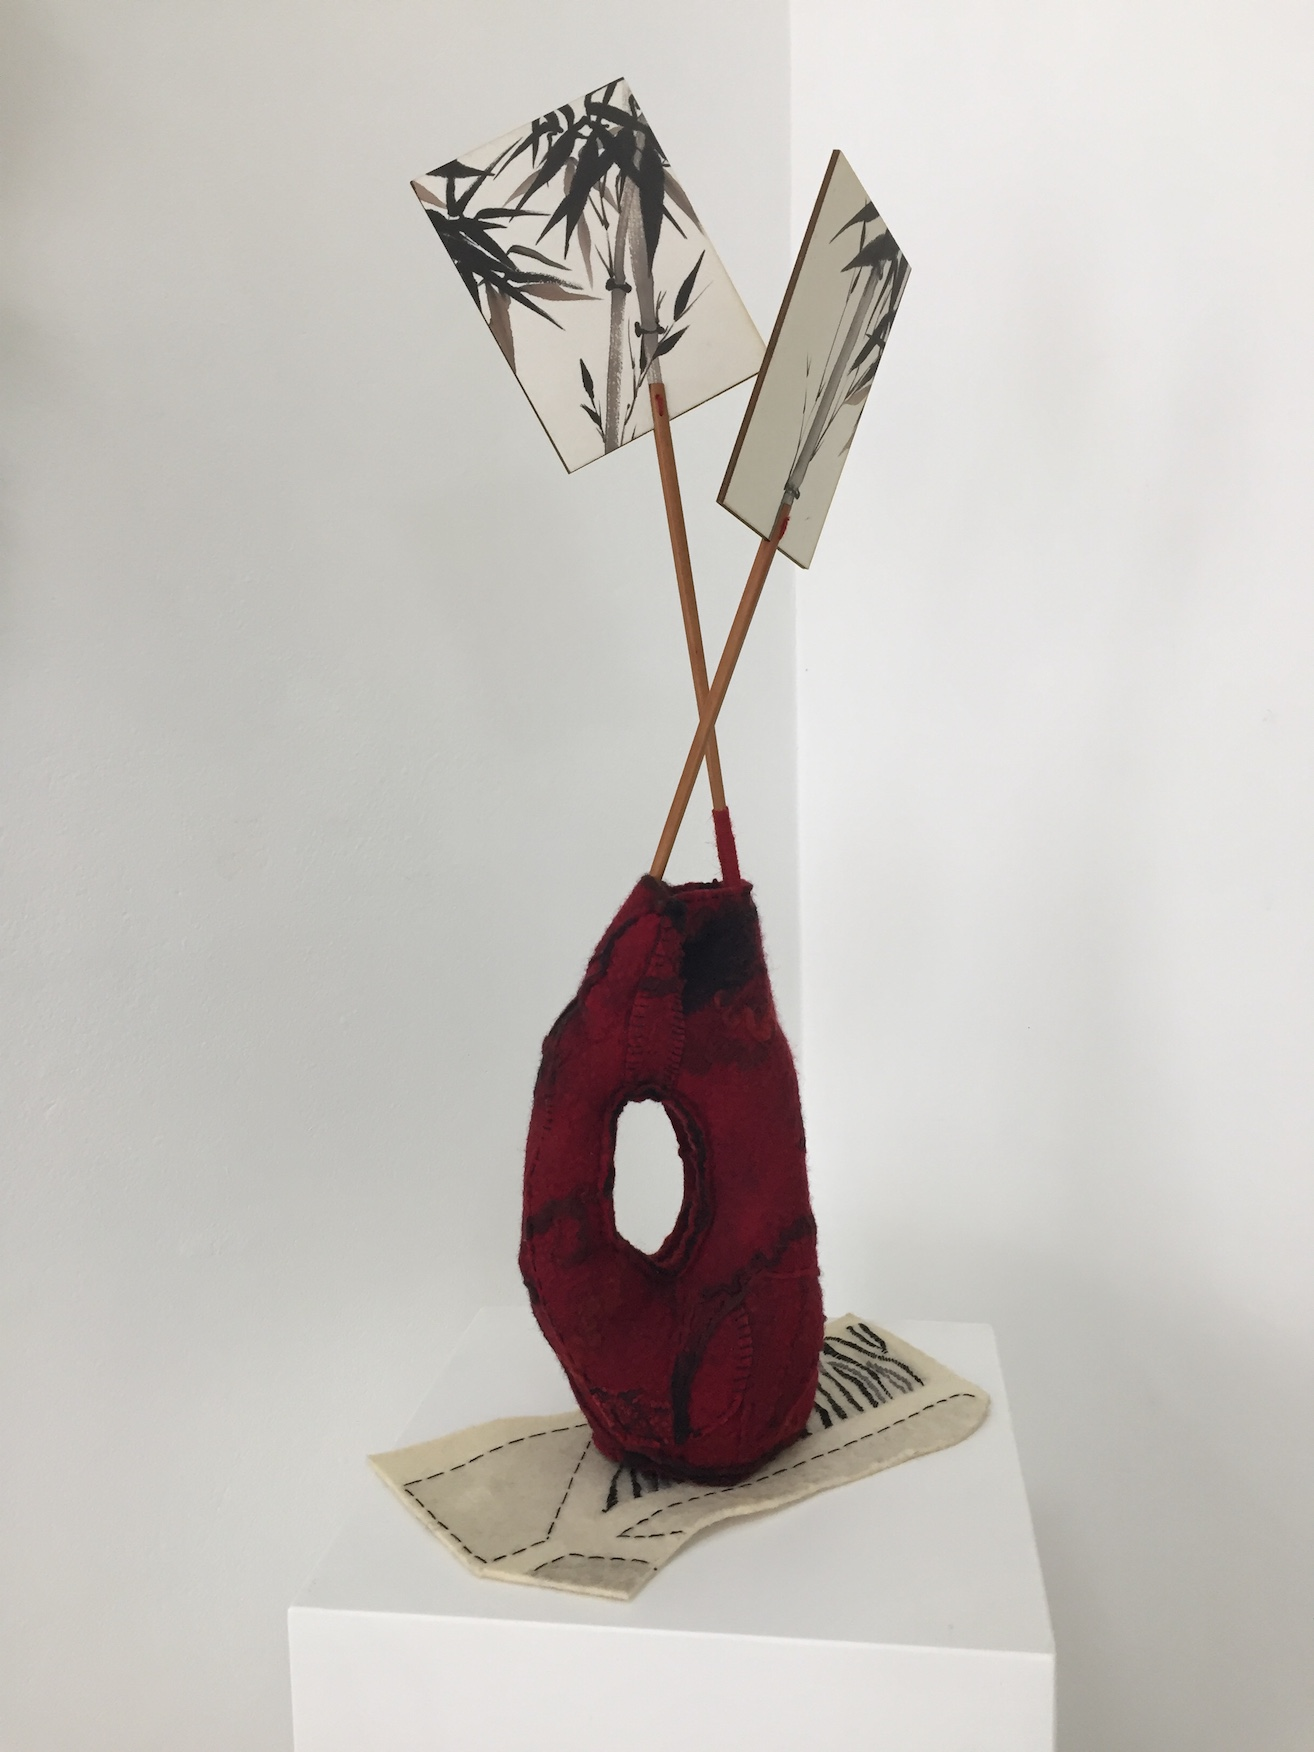 Giselle Penn_In the Pattern of the Interior_2017_felt, collected objects, thread, 50x30x15cm.jpeg